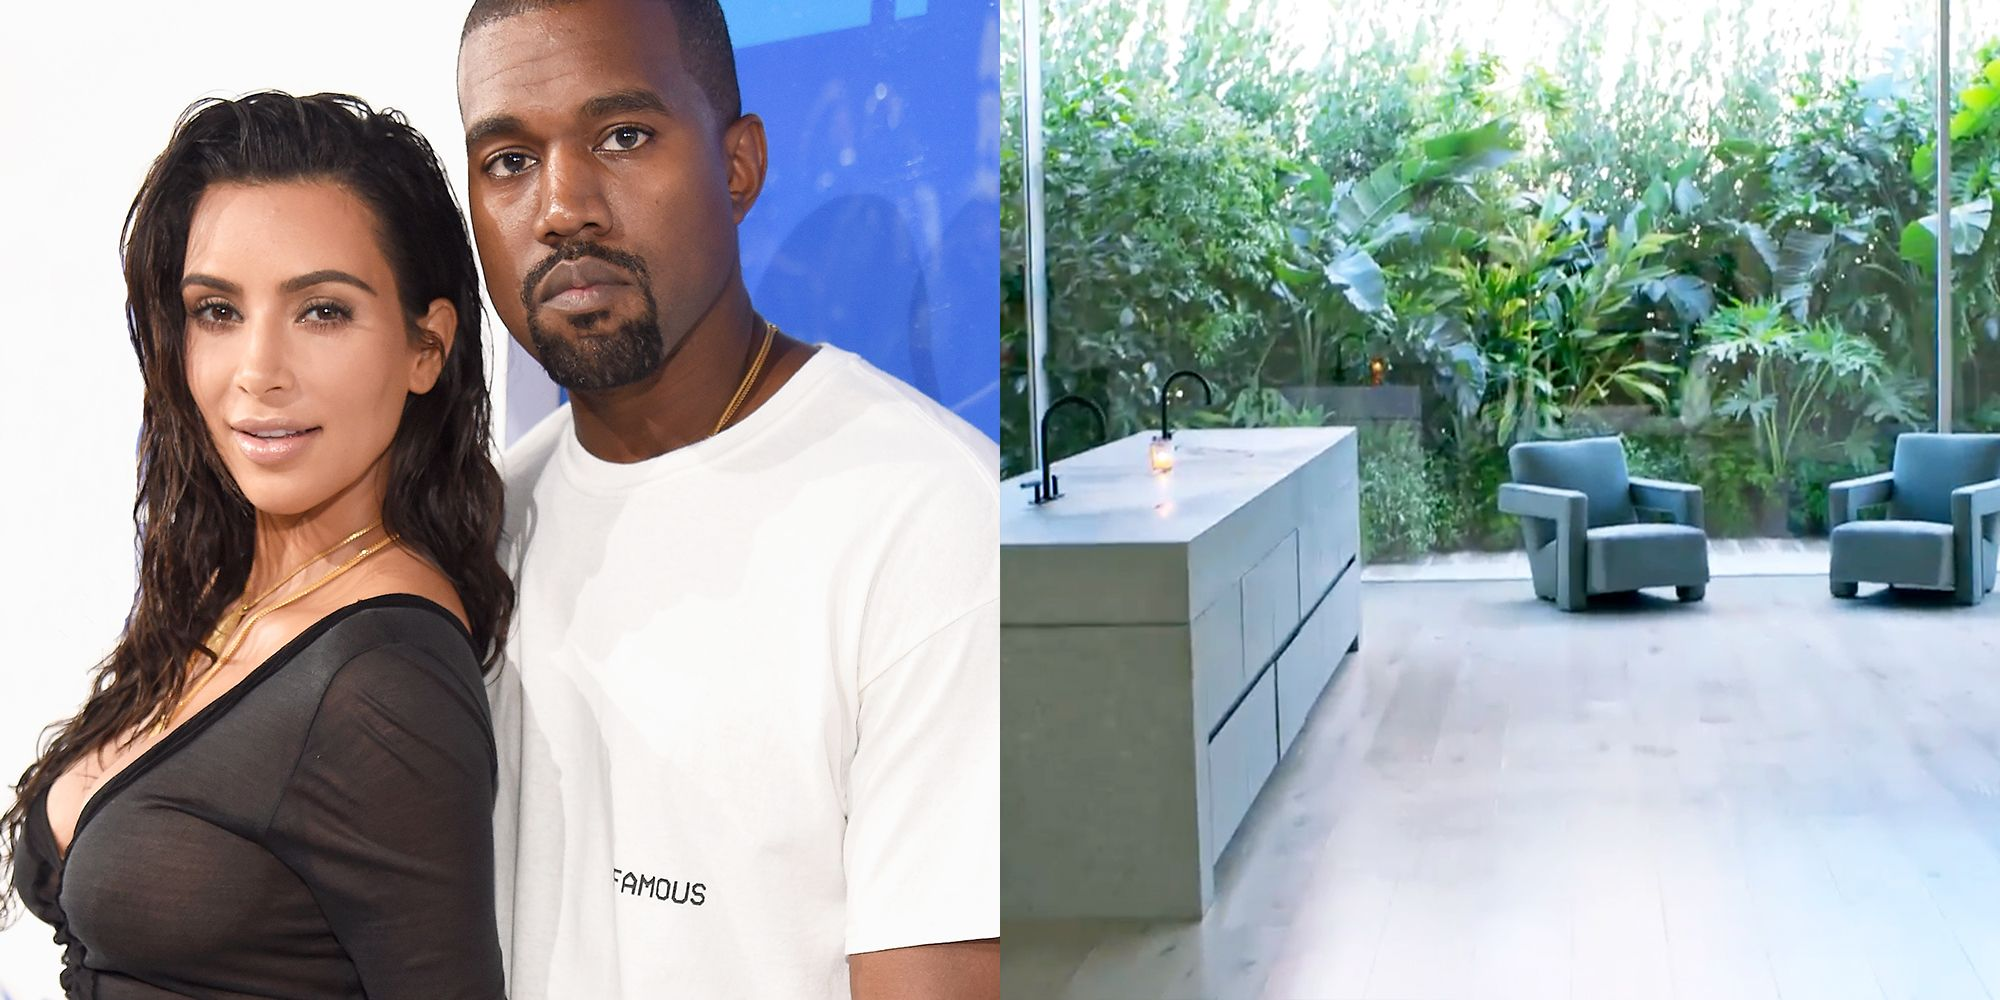 Kim Kardashian Finally Explains Her Mysterious Sinks